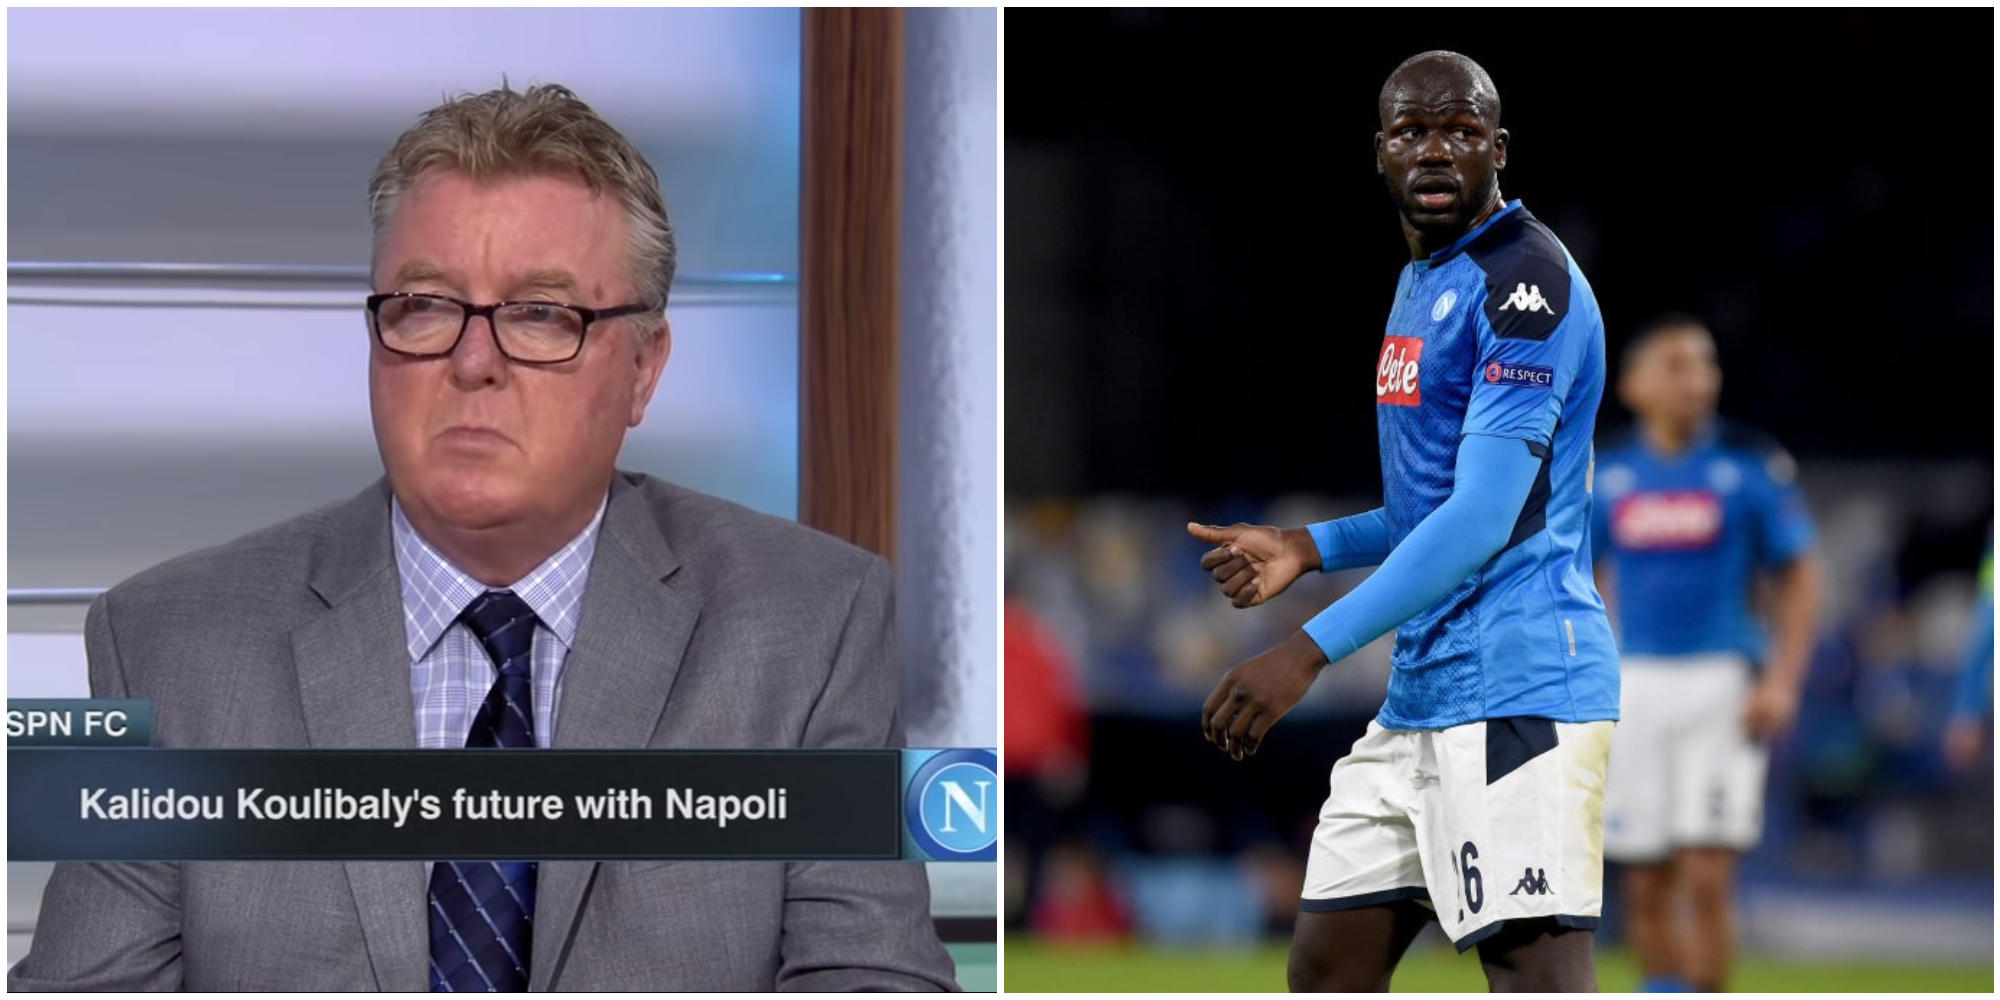 (Video) Kalidou Koulibaly a 'no-brainer' for LFC in the summer, says Reds legend